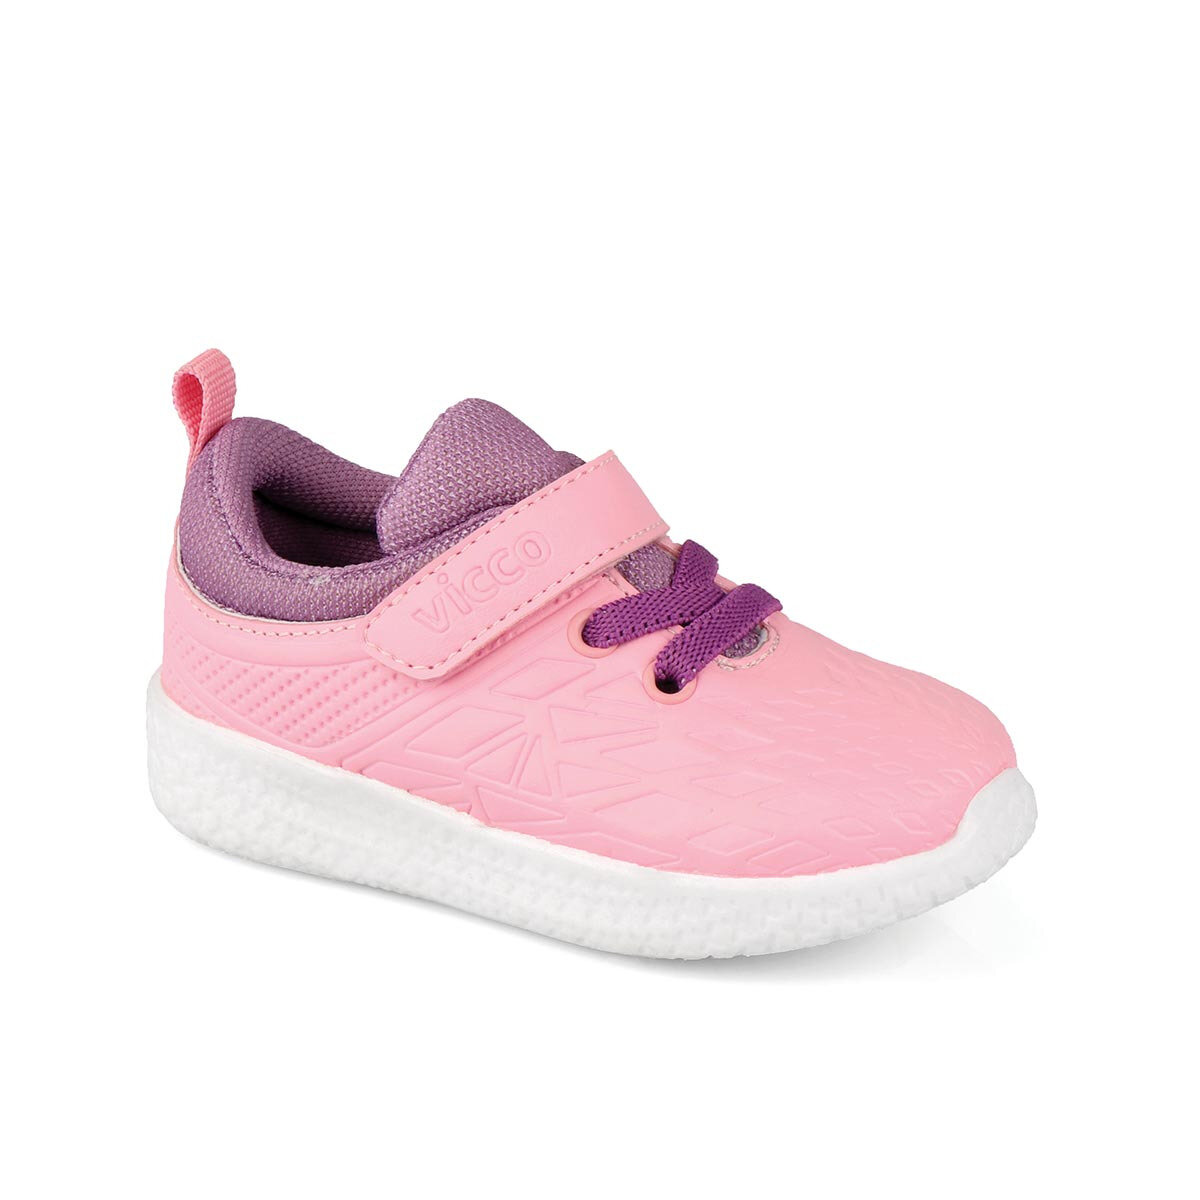 FLO 346.19Y.220 BEBE WORK LIGHT Pink Female Child Sneaker Shoes VICCO